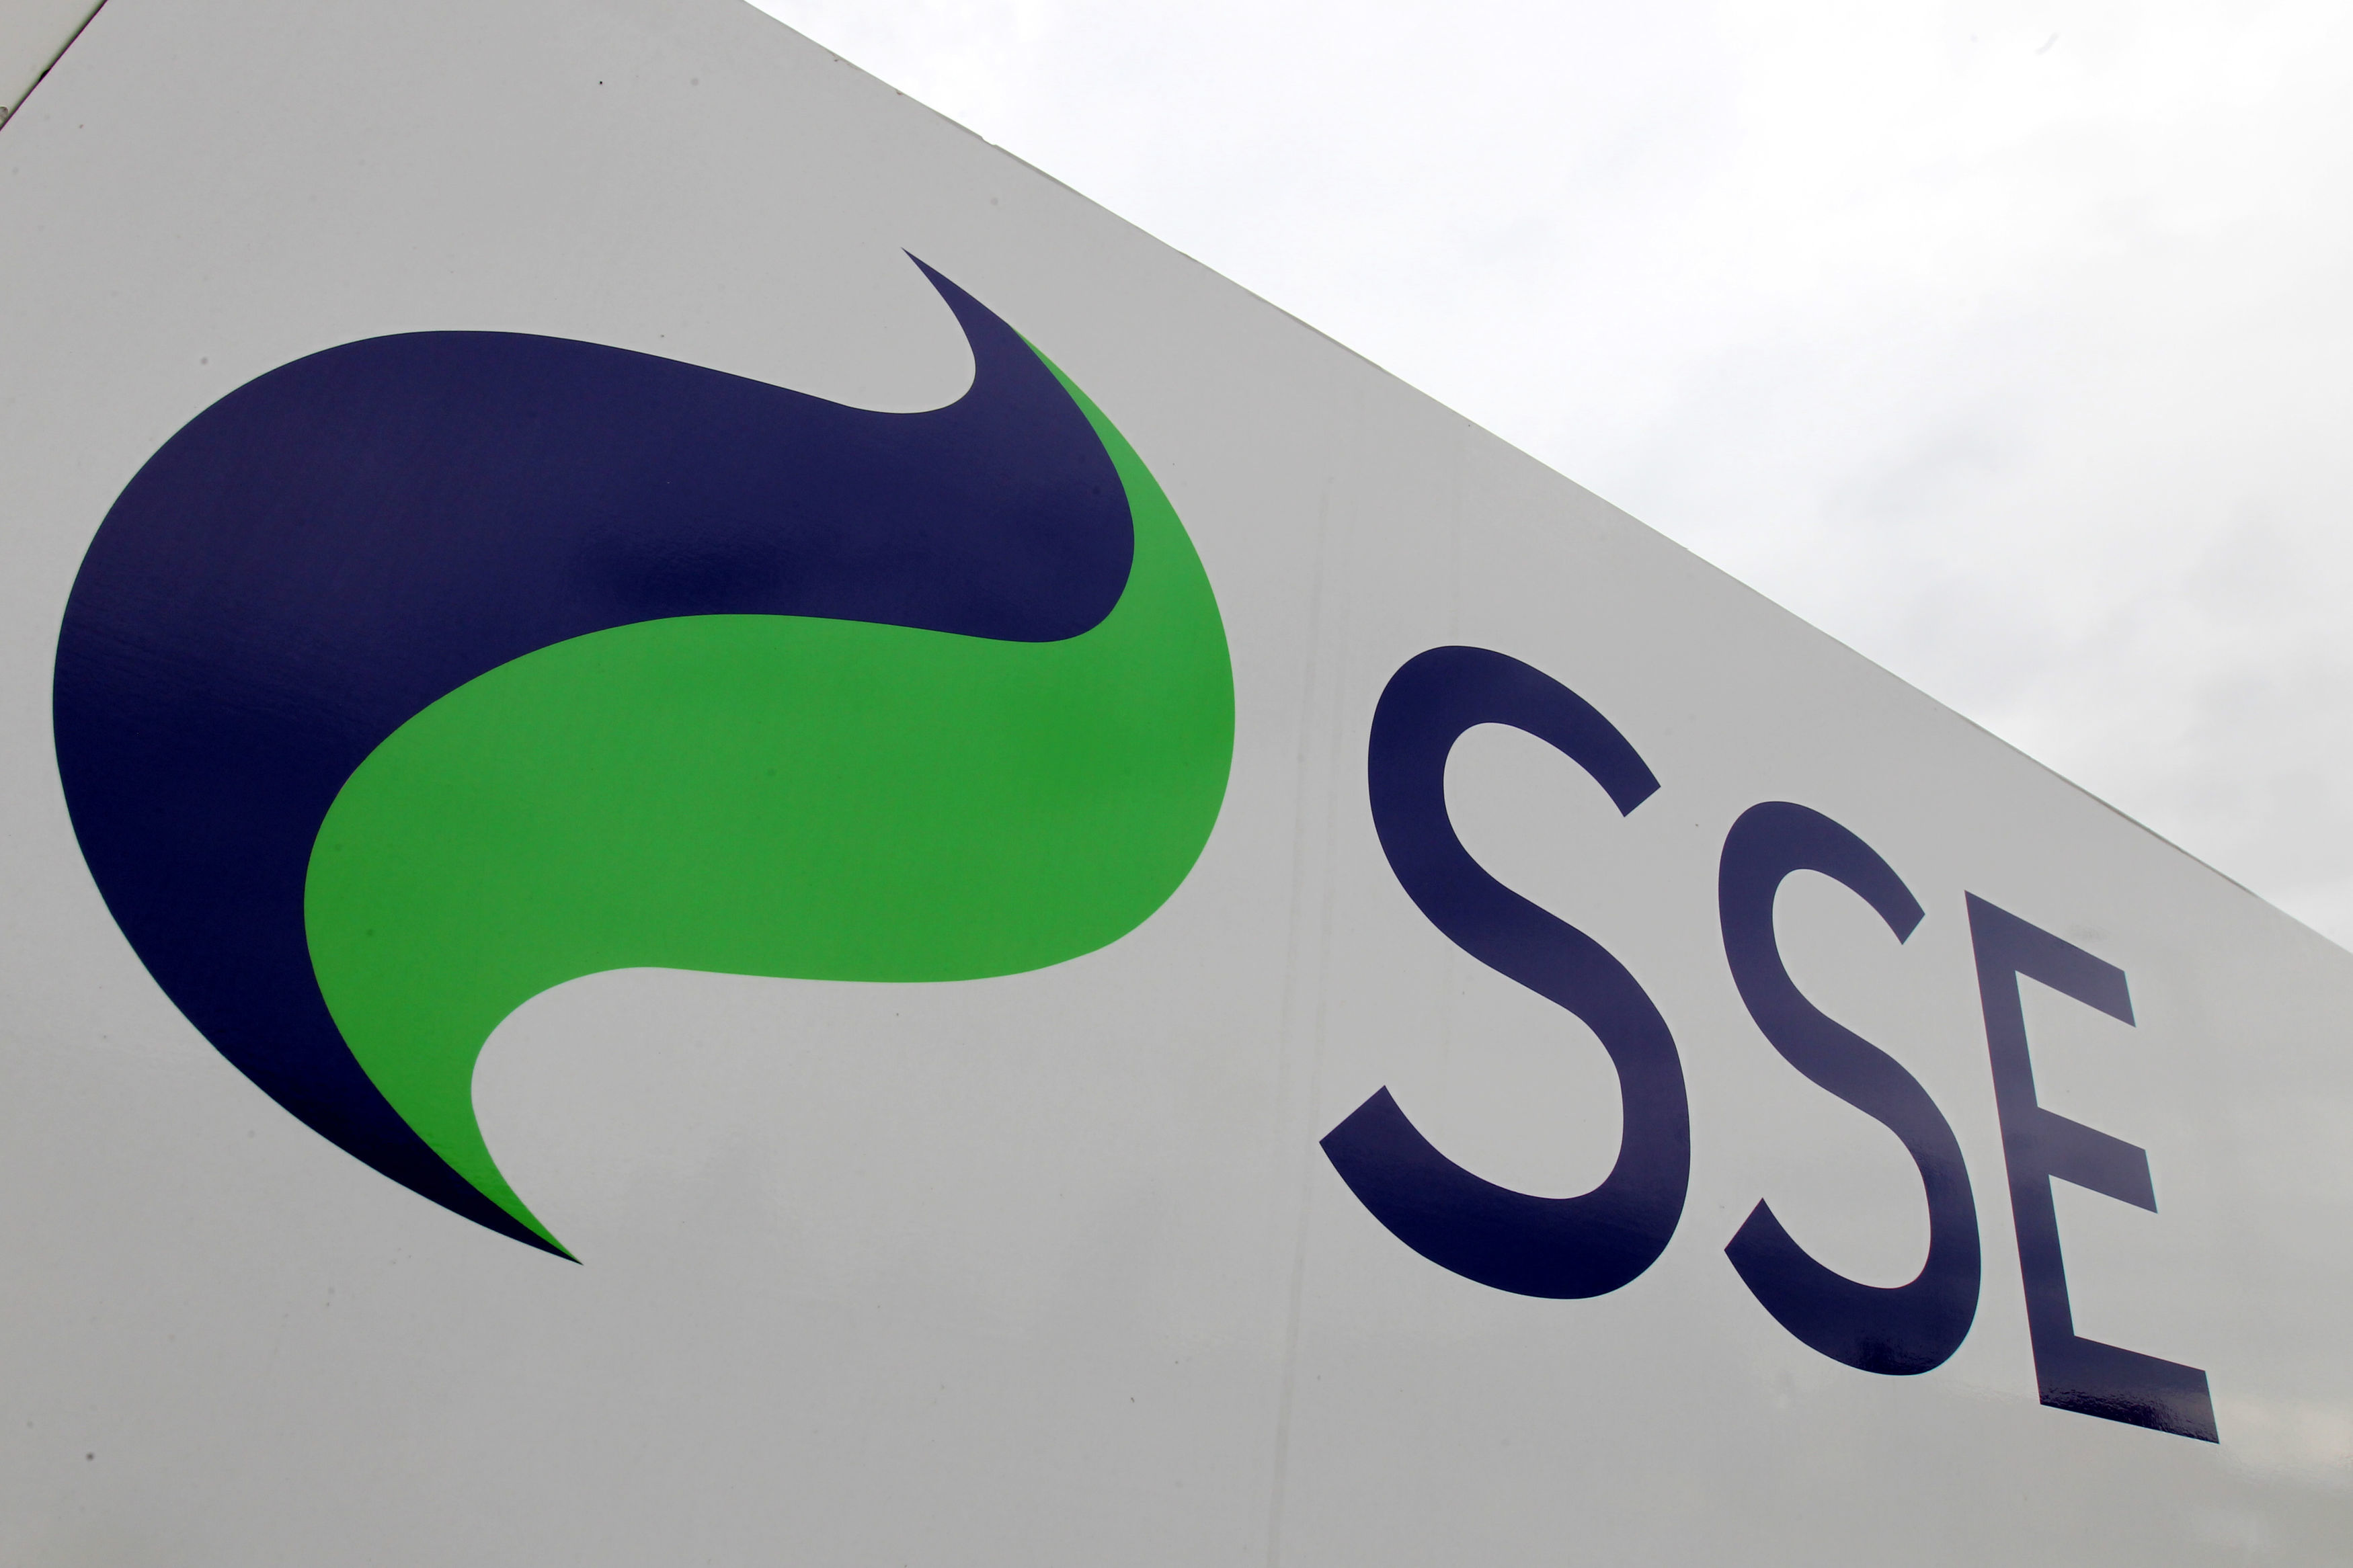 SSE said power would be restored by 1pm.